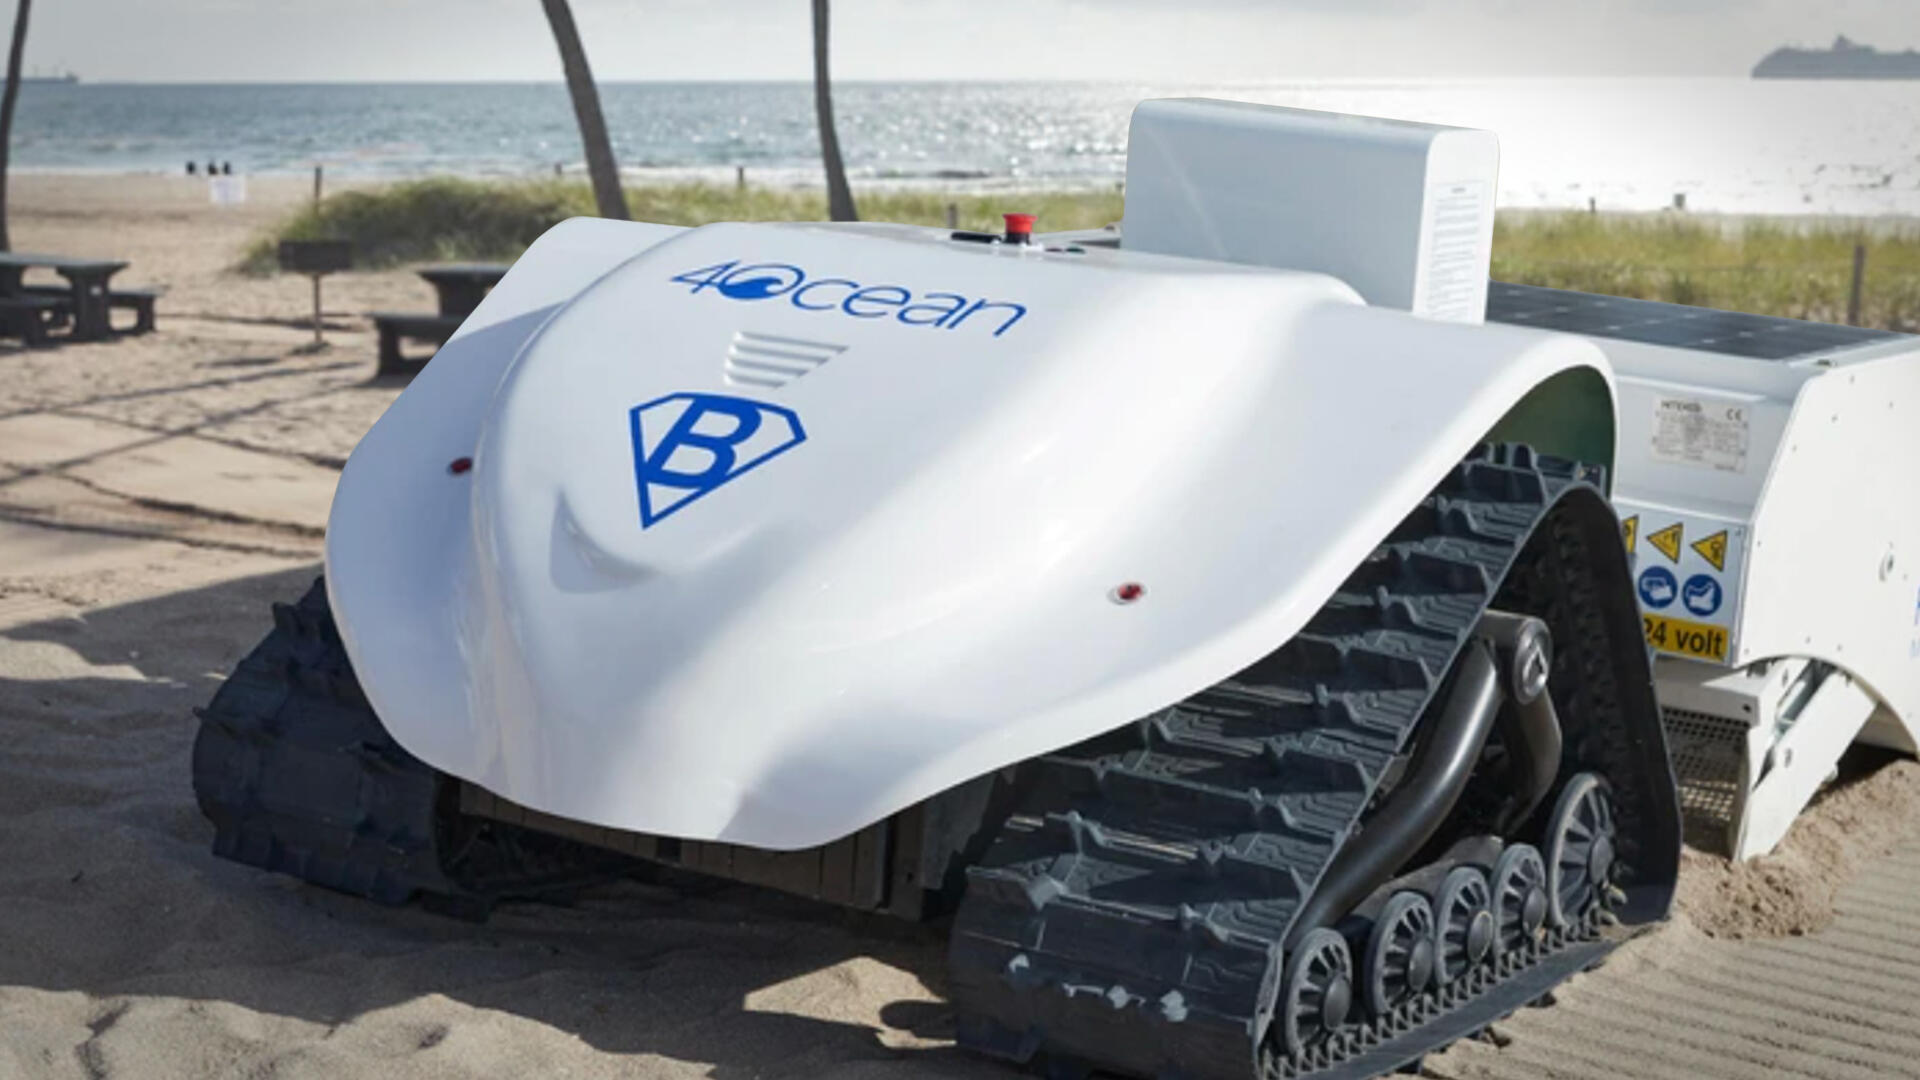 Video: Meet BeBot: The 100% electric beach-cleaning robot